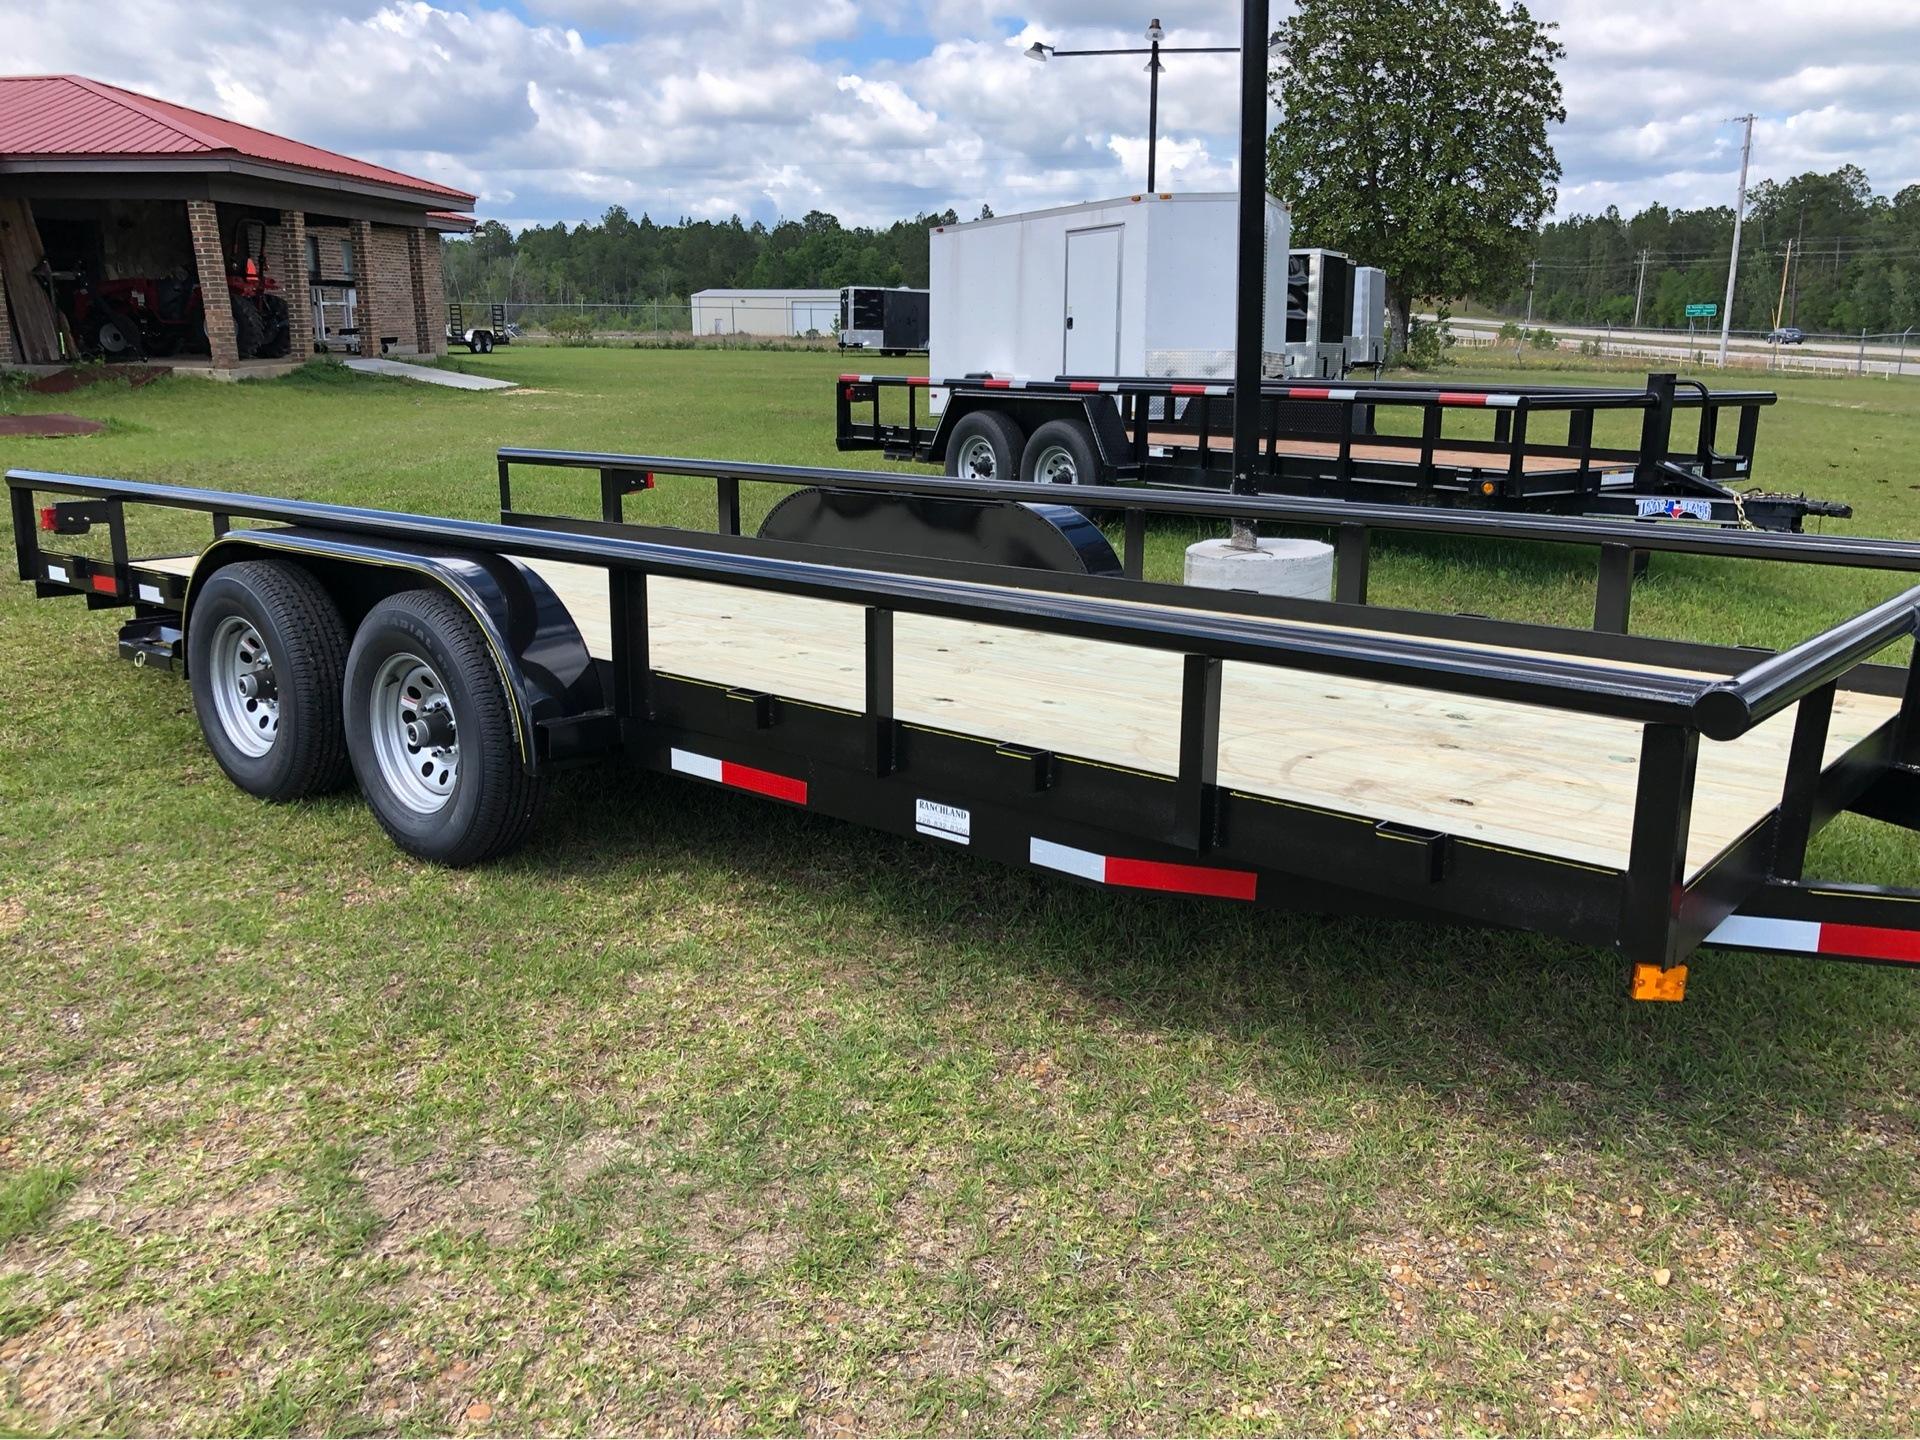 2019 Ranchland Trailers 7x20 Big Pipe, 10K, SIR, Brakes in Saucier, Mississippi - Photo 4